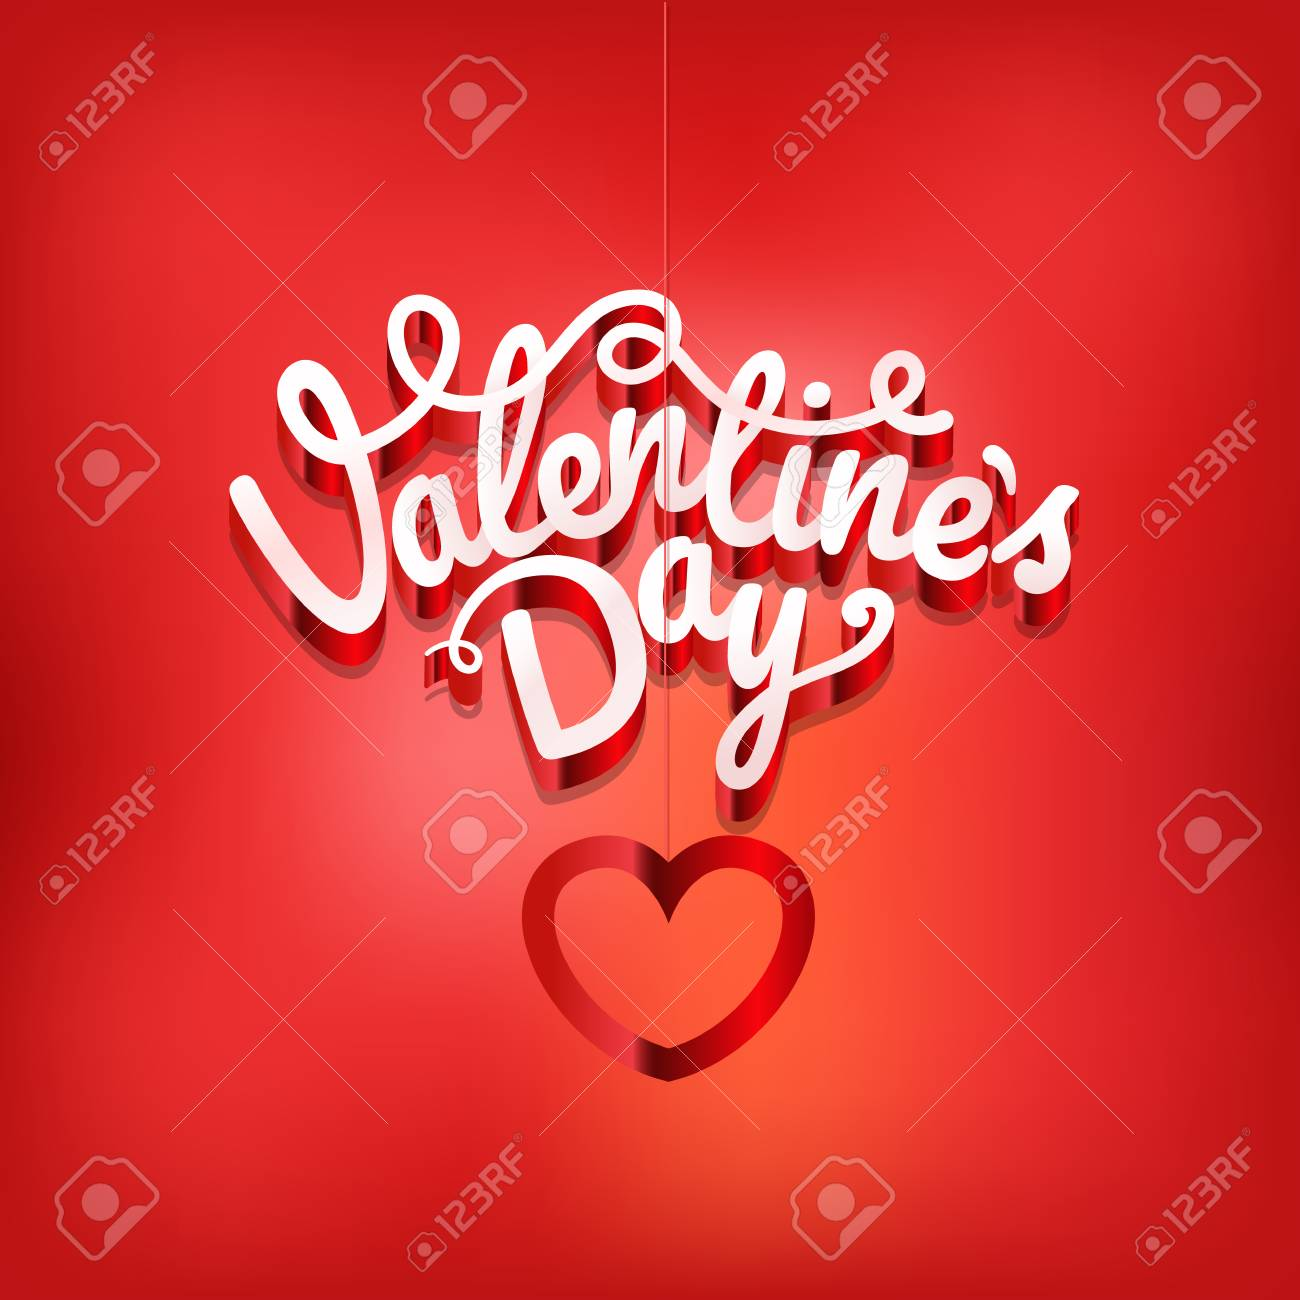 Happy valentines day wishes greeting card layout valentines happy valentines day wishes greeting card layout valentines vector label on blured background stock vector m4hsunfo